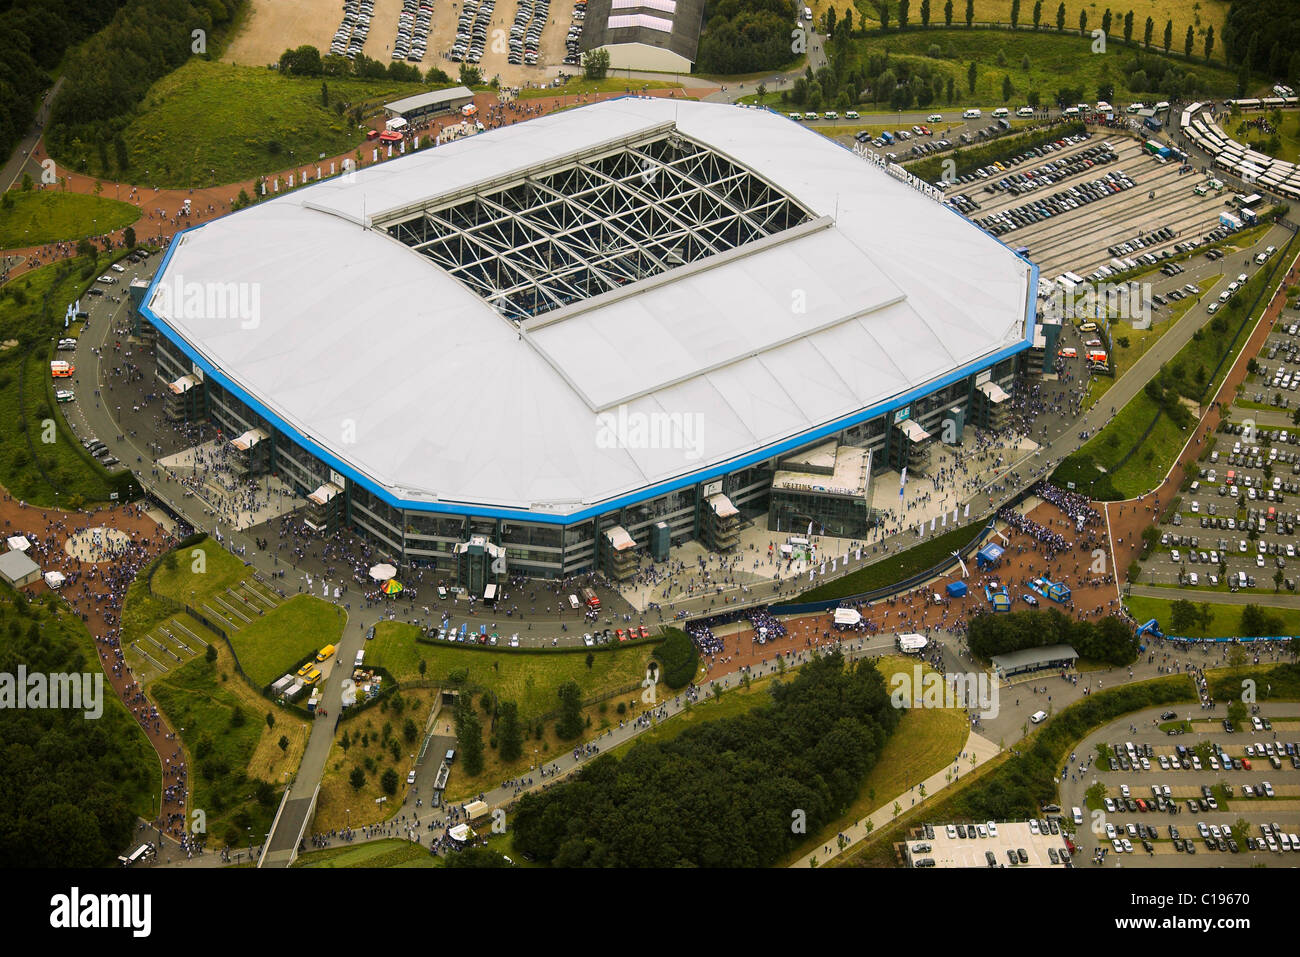 aerial photo arena auf schalke schalke arena veltins arena stock photo royalty free image. Black Bedroom Furniture Sets. Home Design Ideas